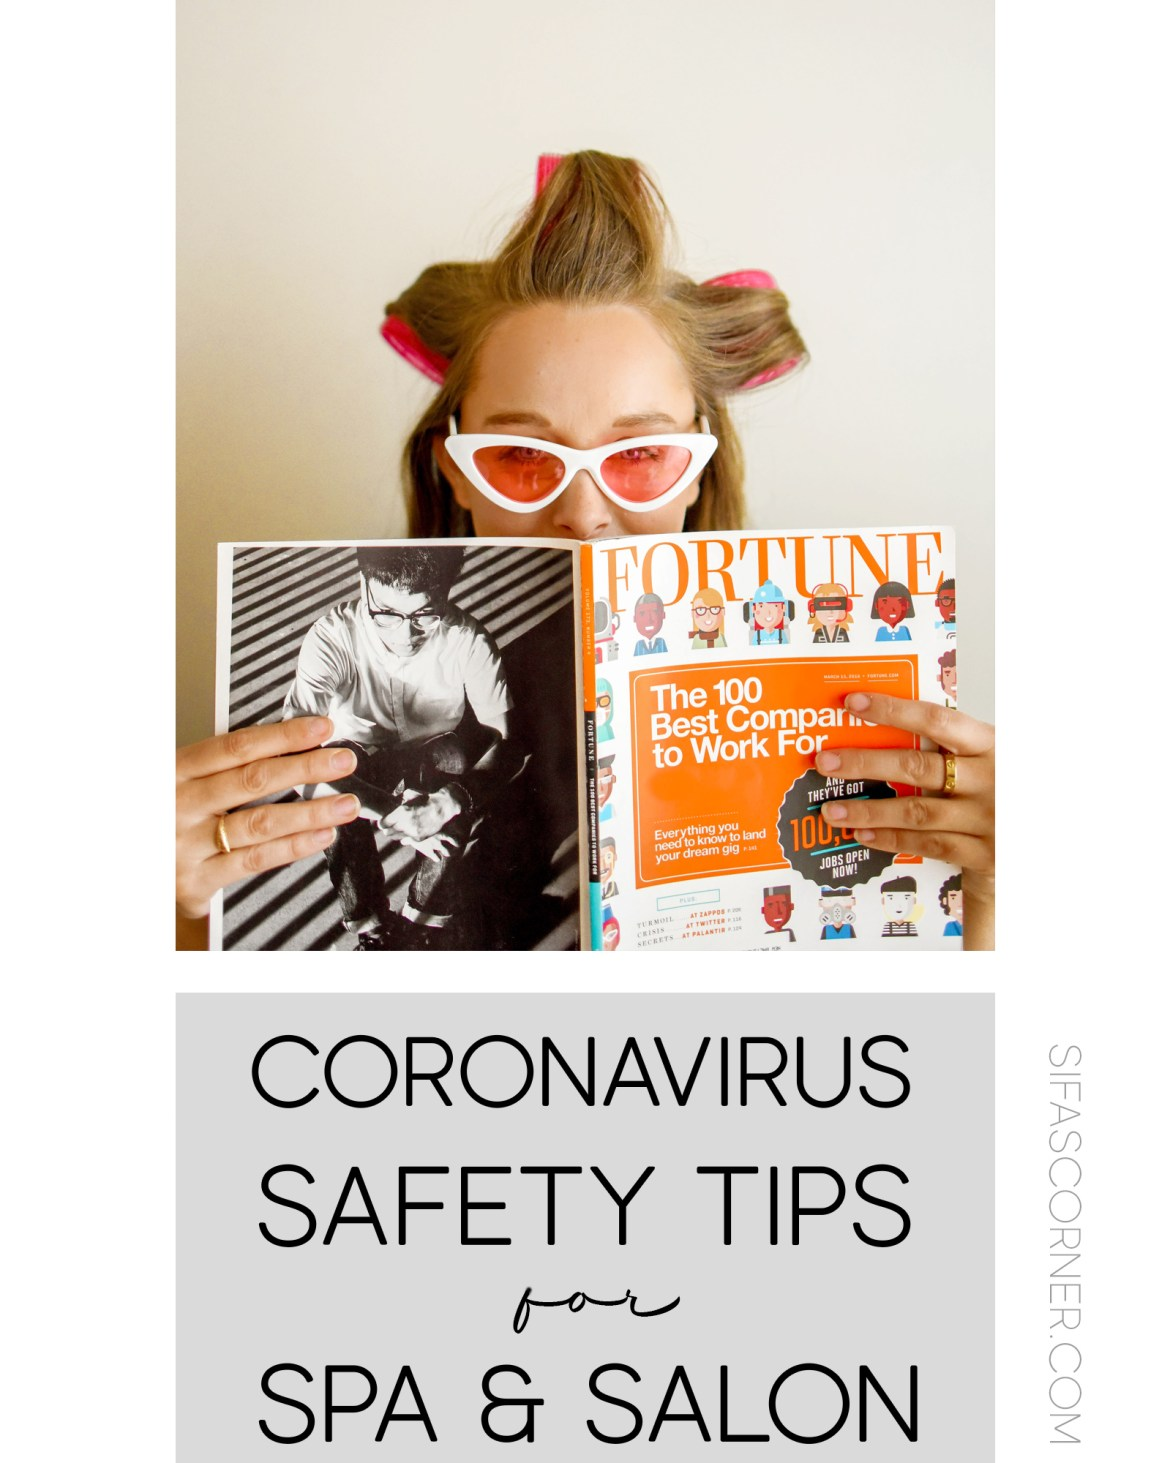 Coronavirus Safety Tips For Spa Salon